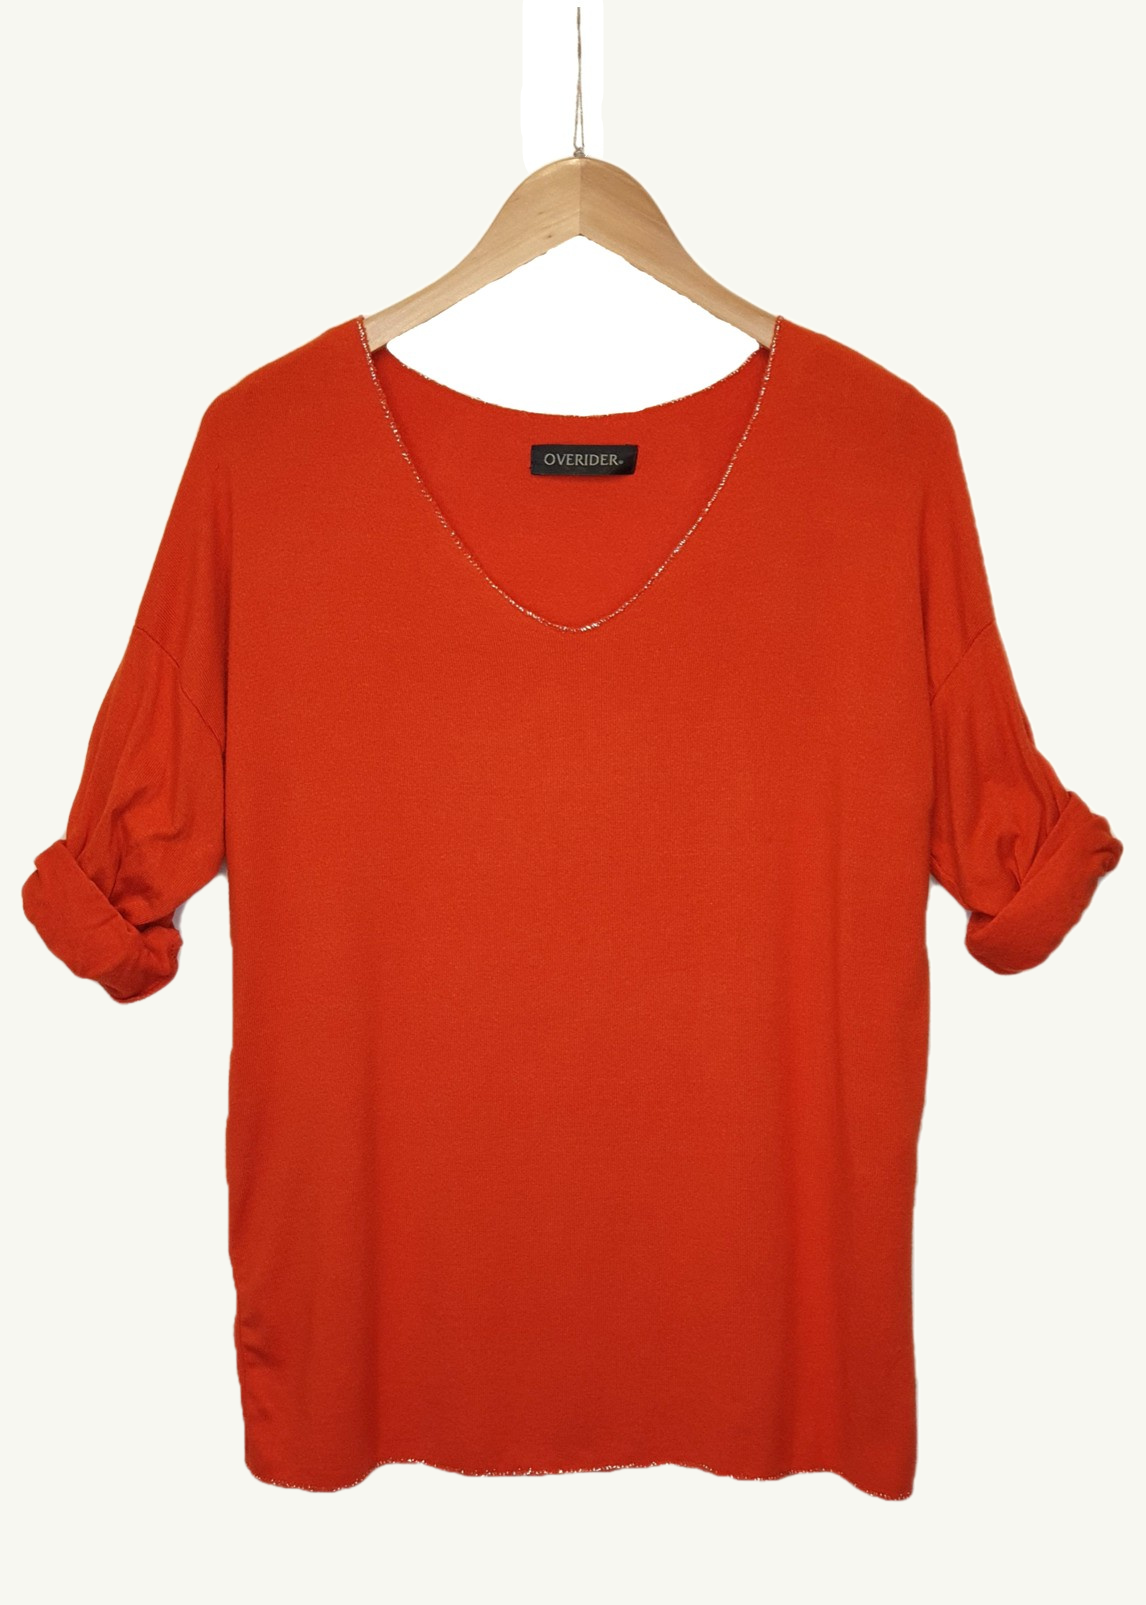 ELISE - 'V' Neck Sparkle  Knit Top - Rust